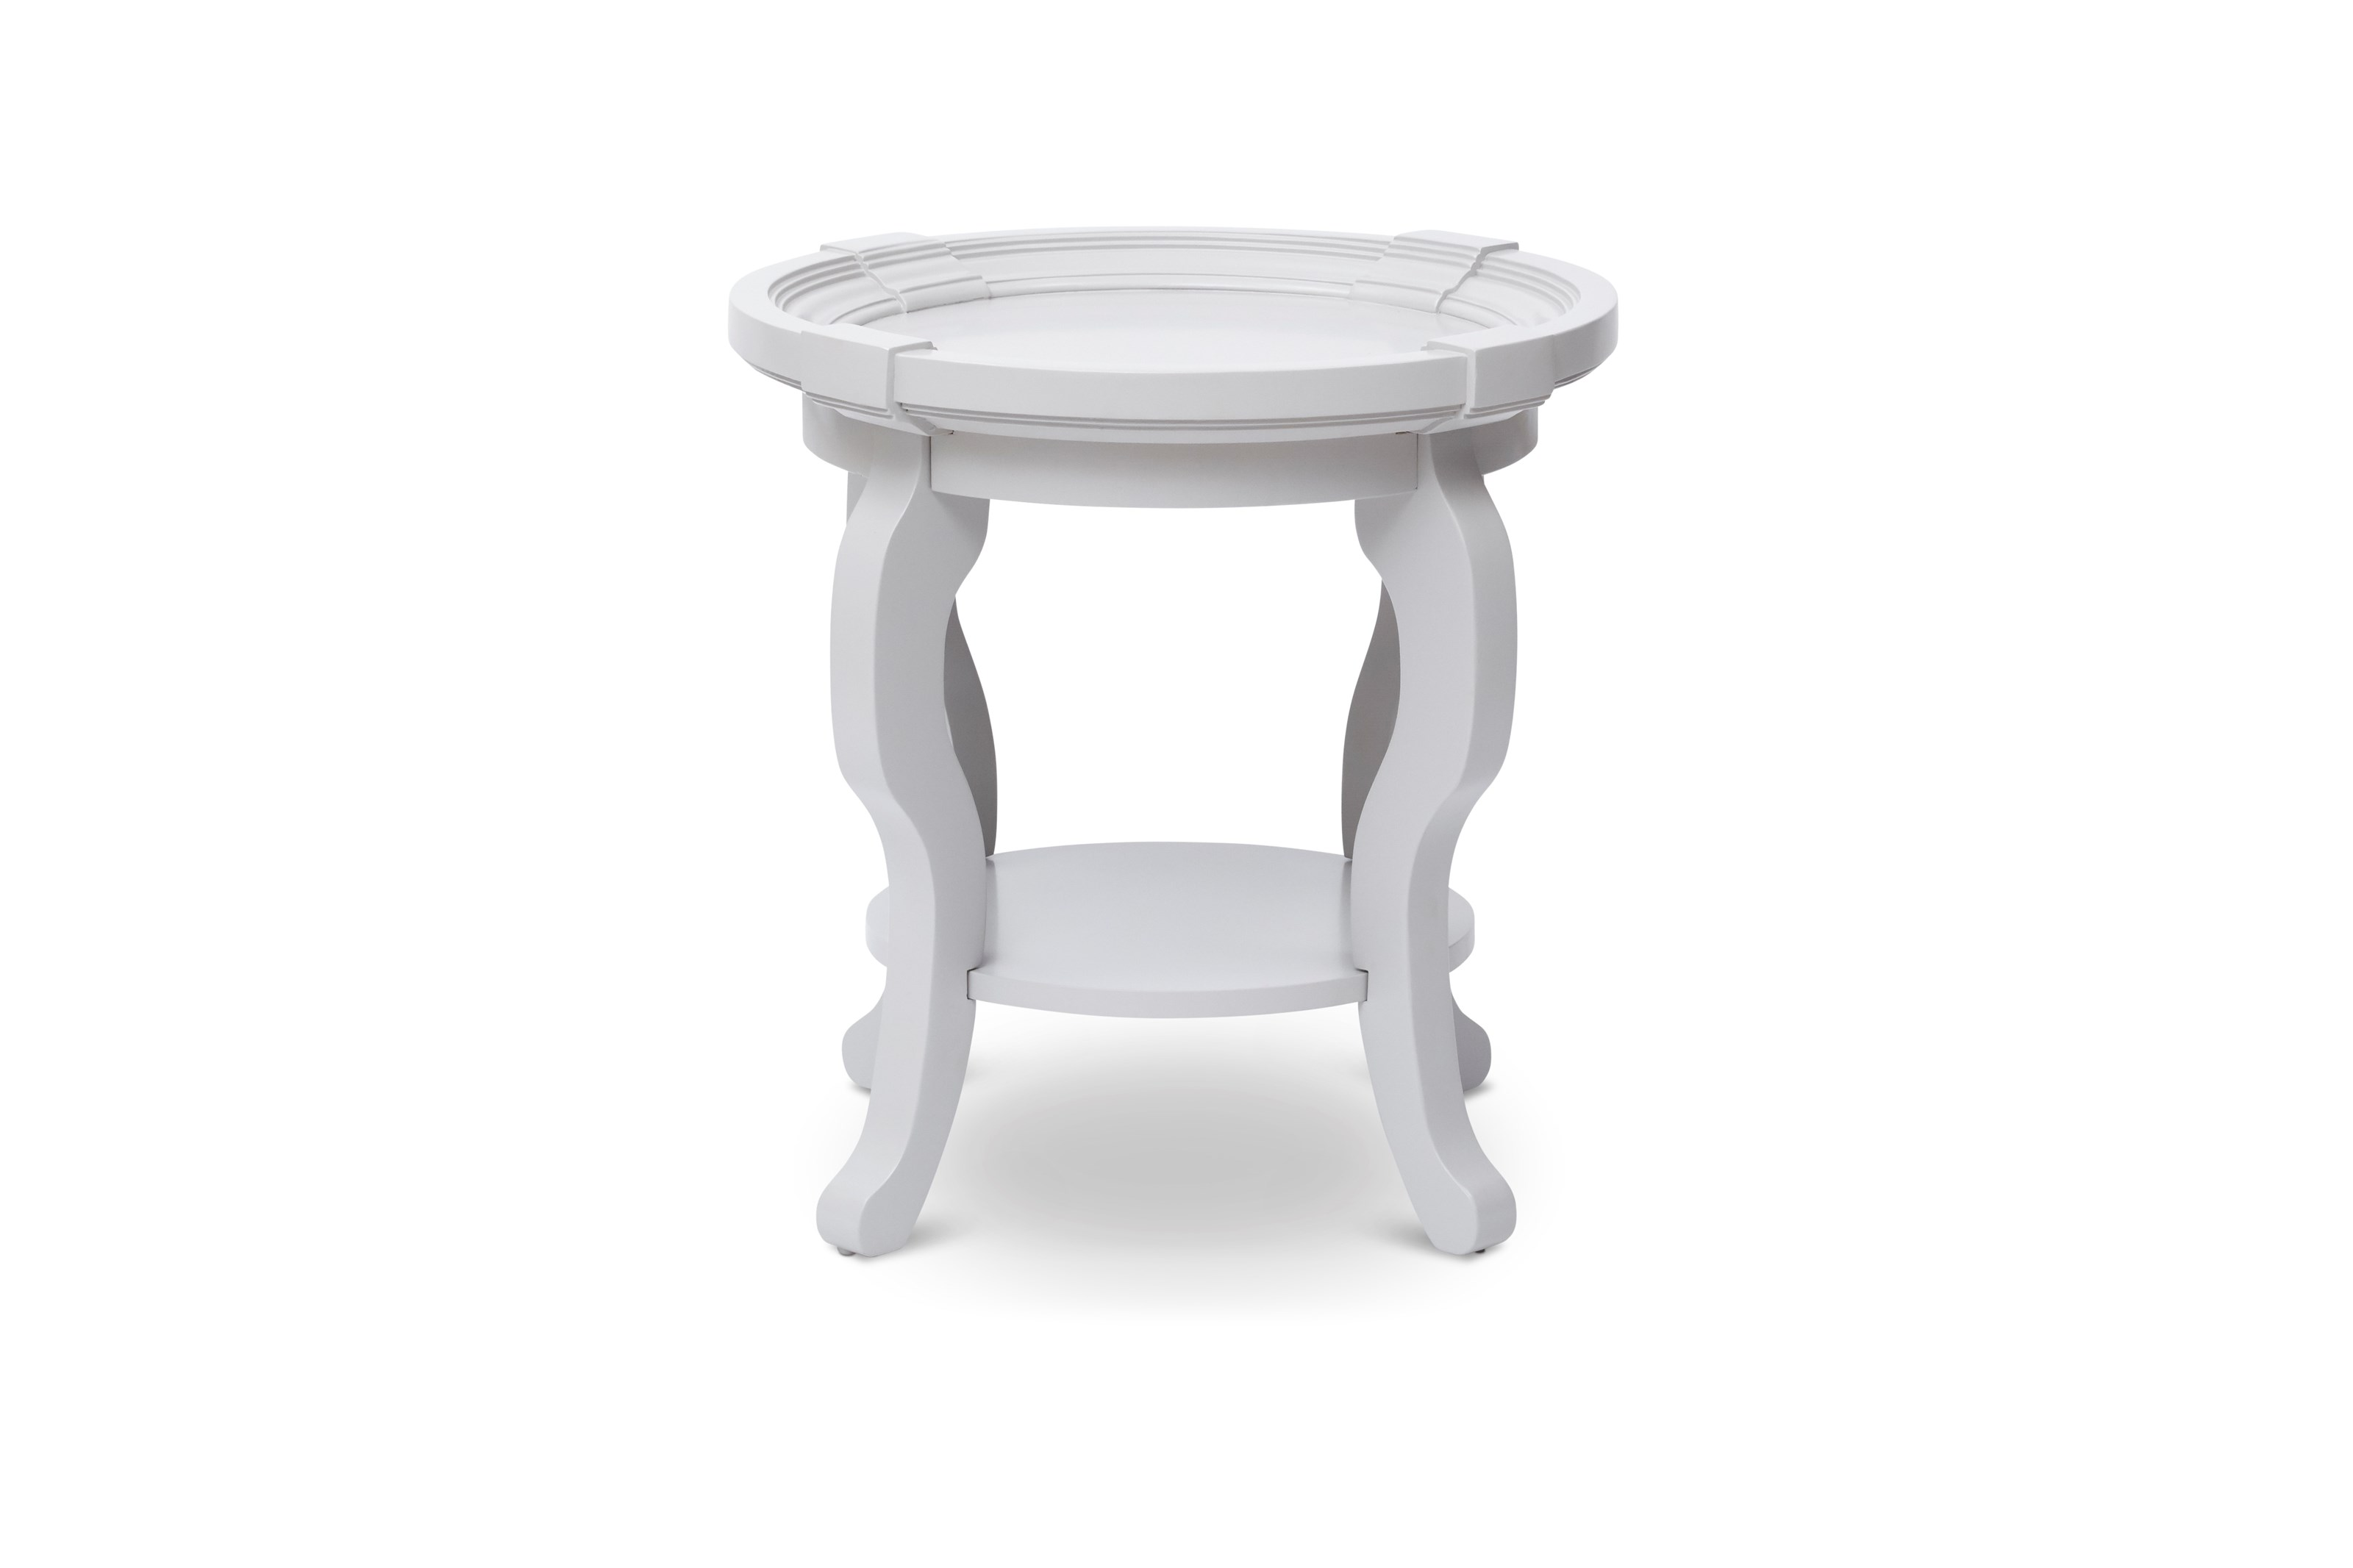 Chateau End Table by Jofran at Jofran